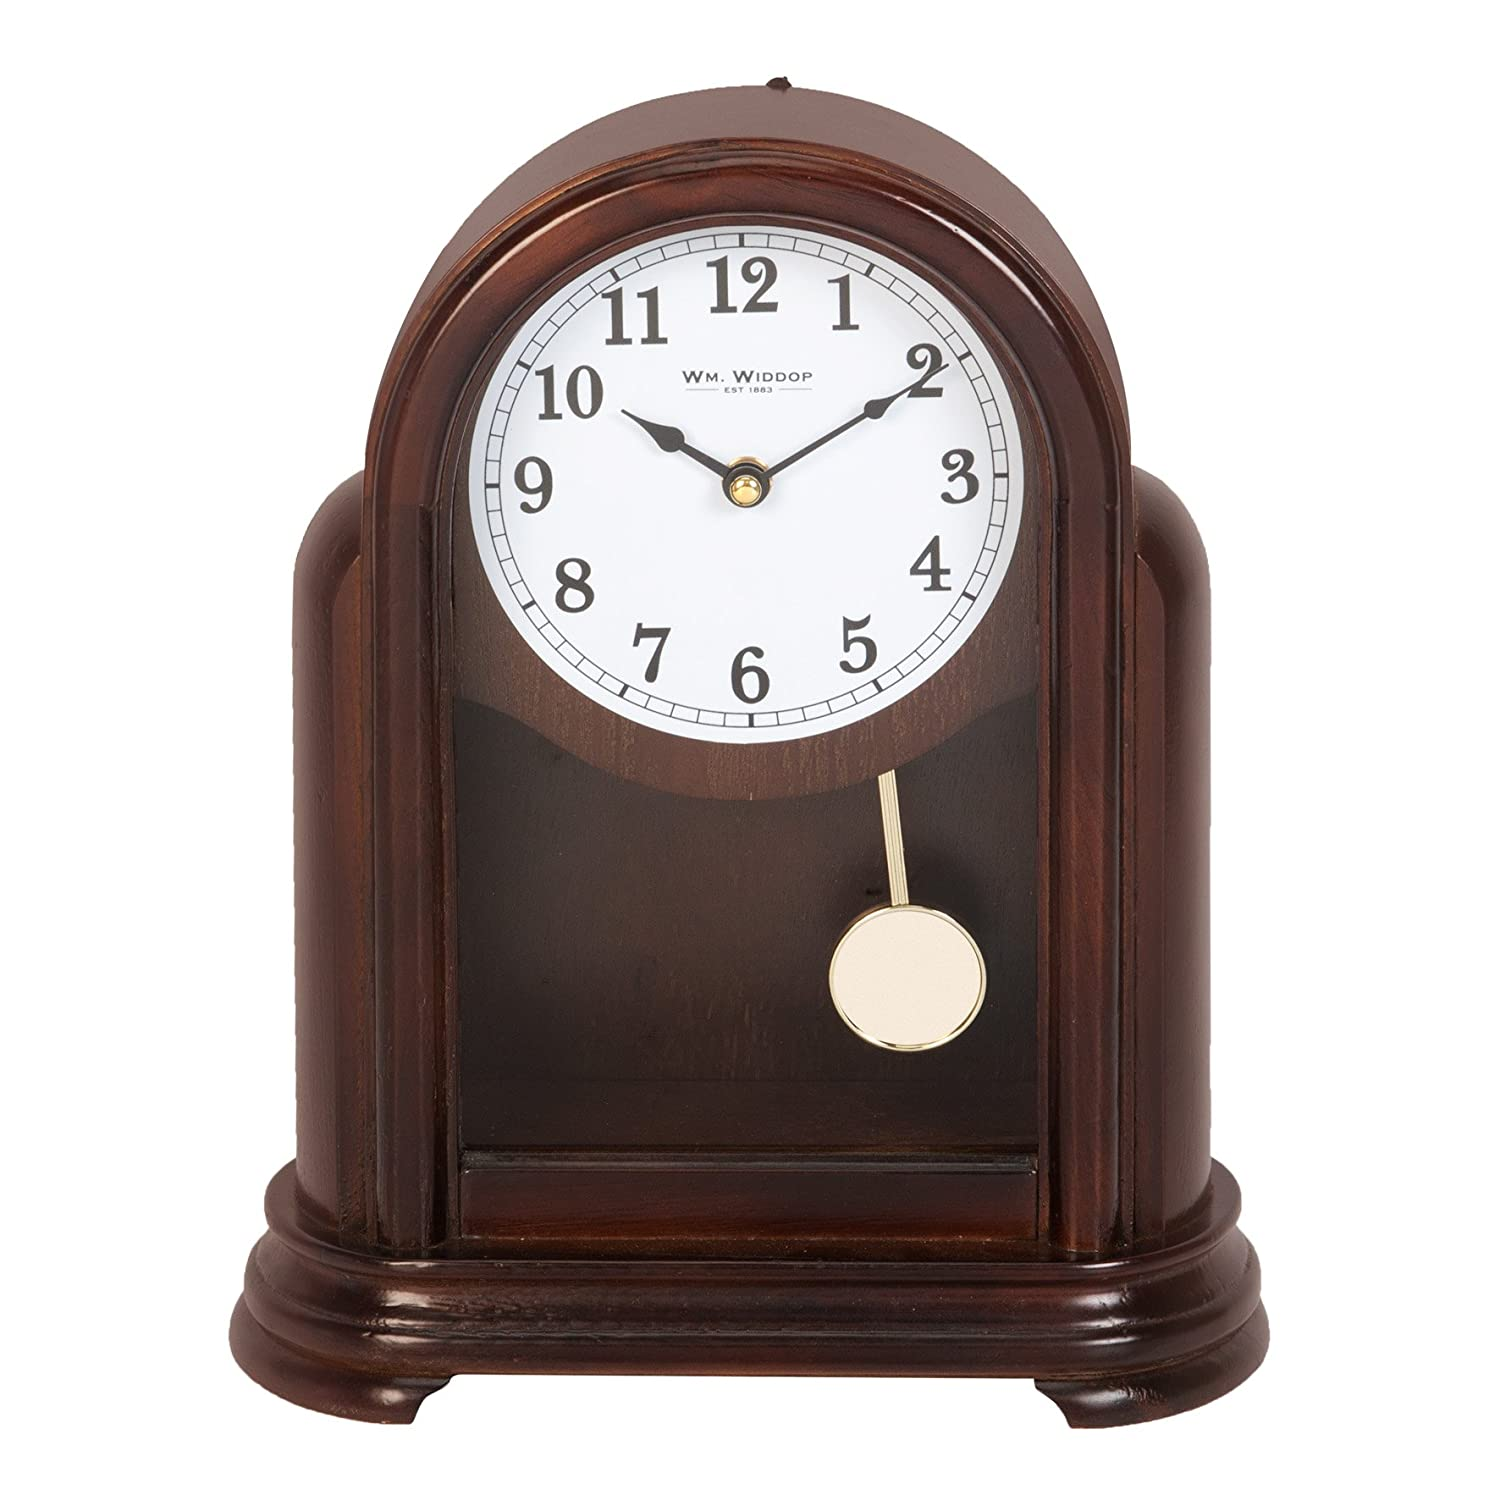 Wm Widdop Traditional Dark Wooden Case Mantel Quartz Pendulum Clock